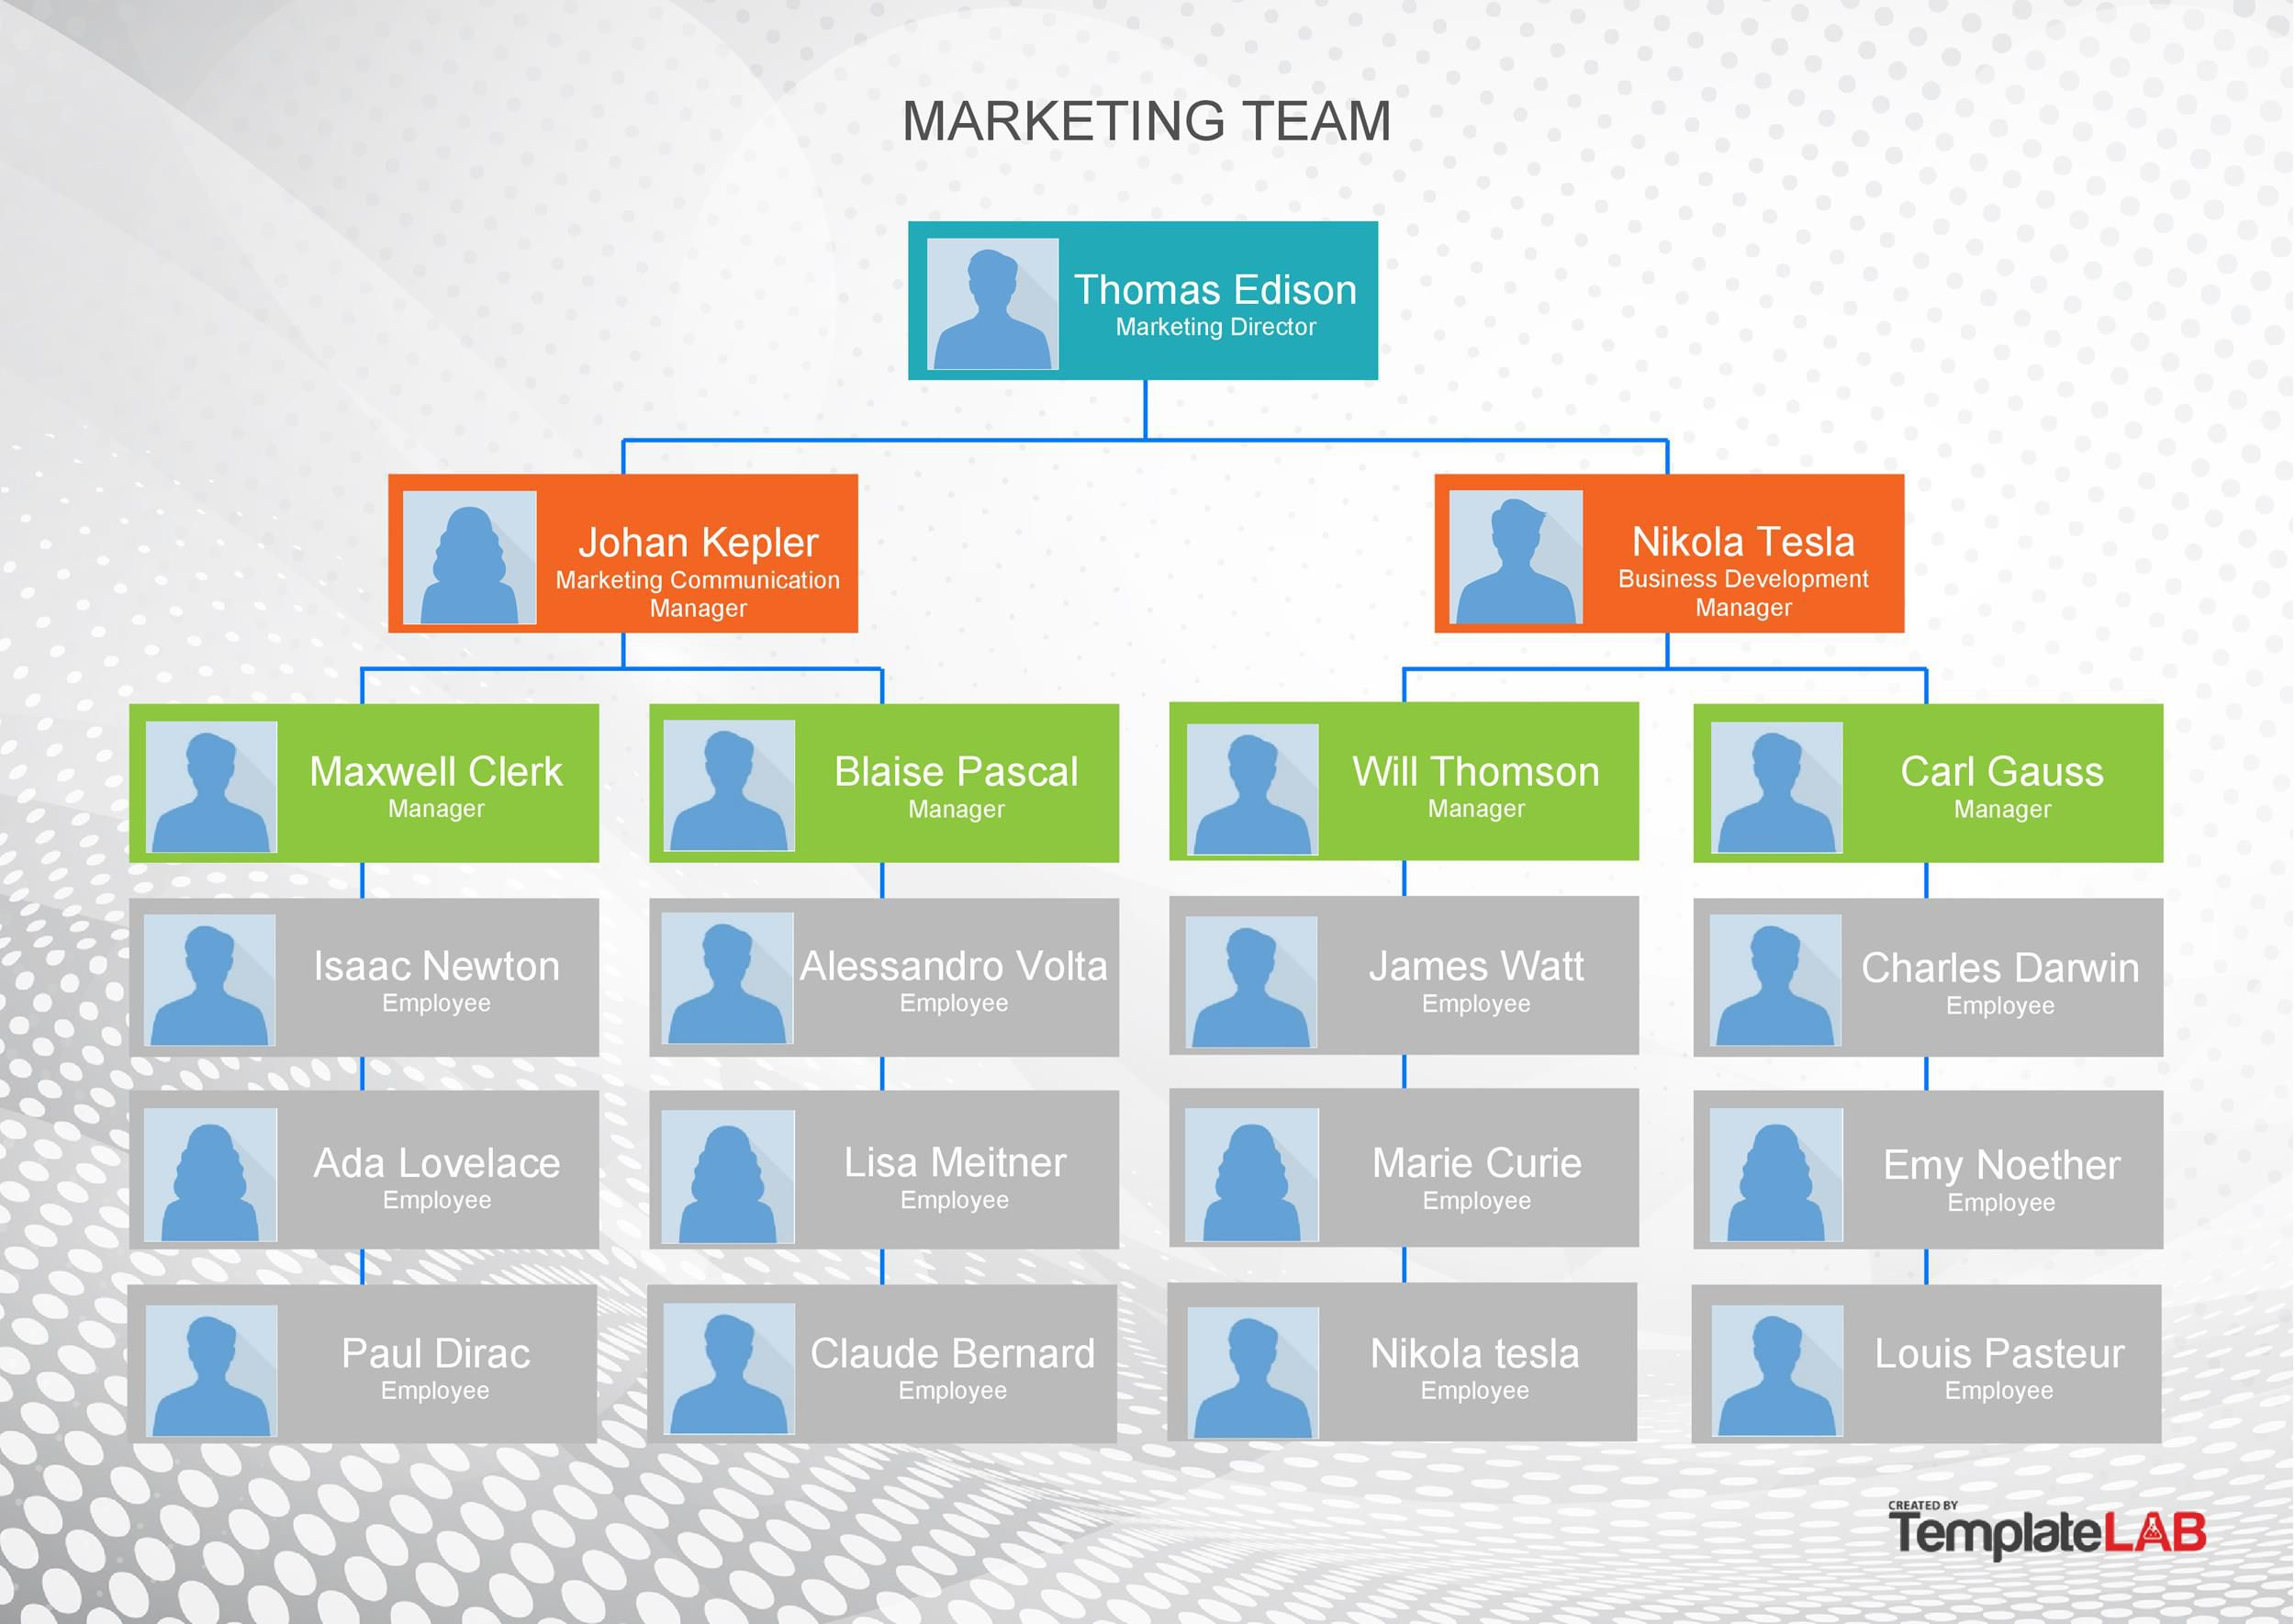 005 Archaicawful Organizational Chart Template Powerpoint Free Sample  Download 2010 OrganizationFull